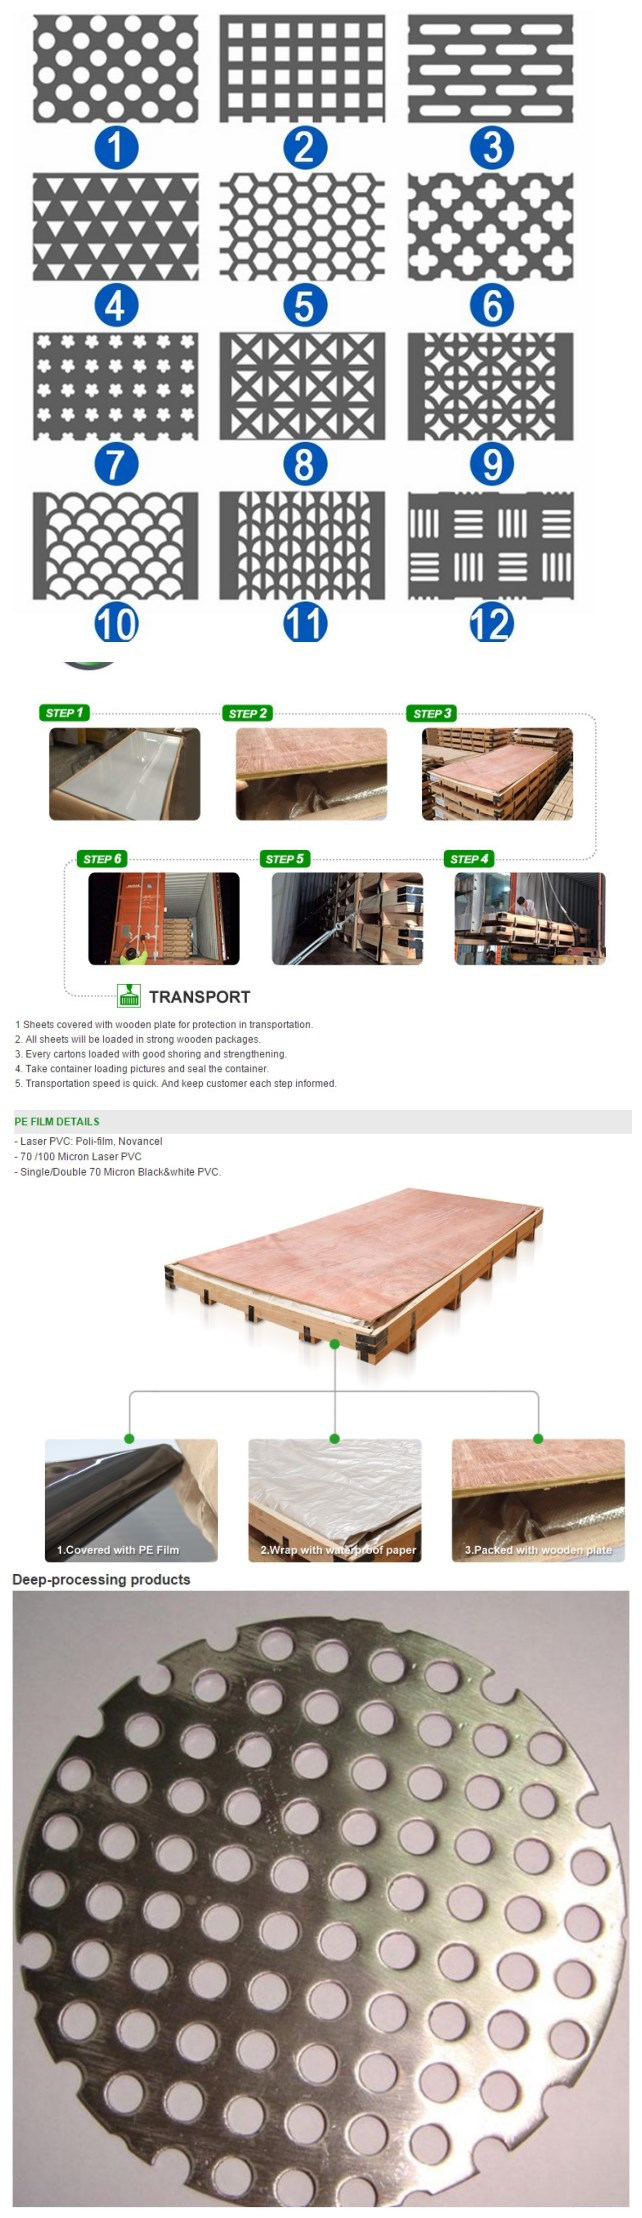 Manufacture Anti-Skid Plate of Walkway and Stairs